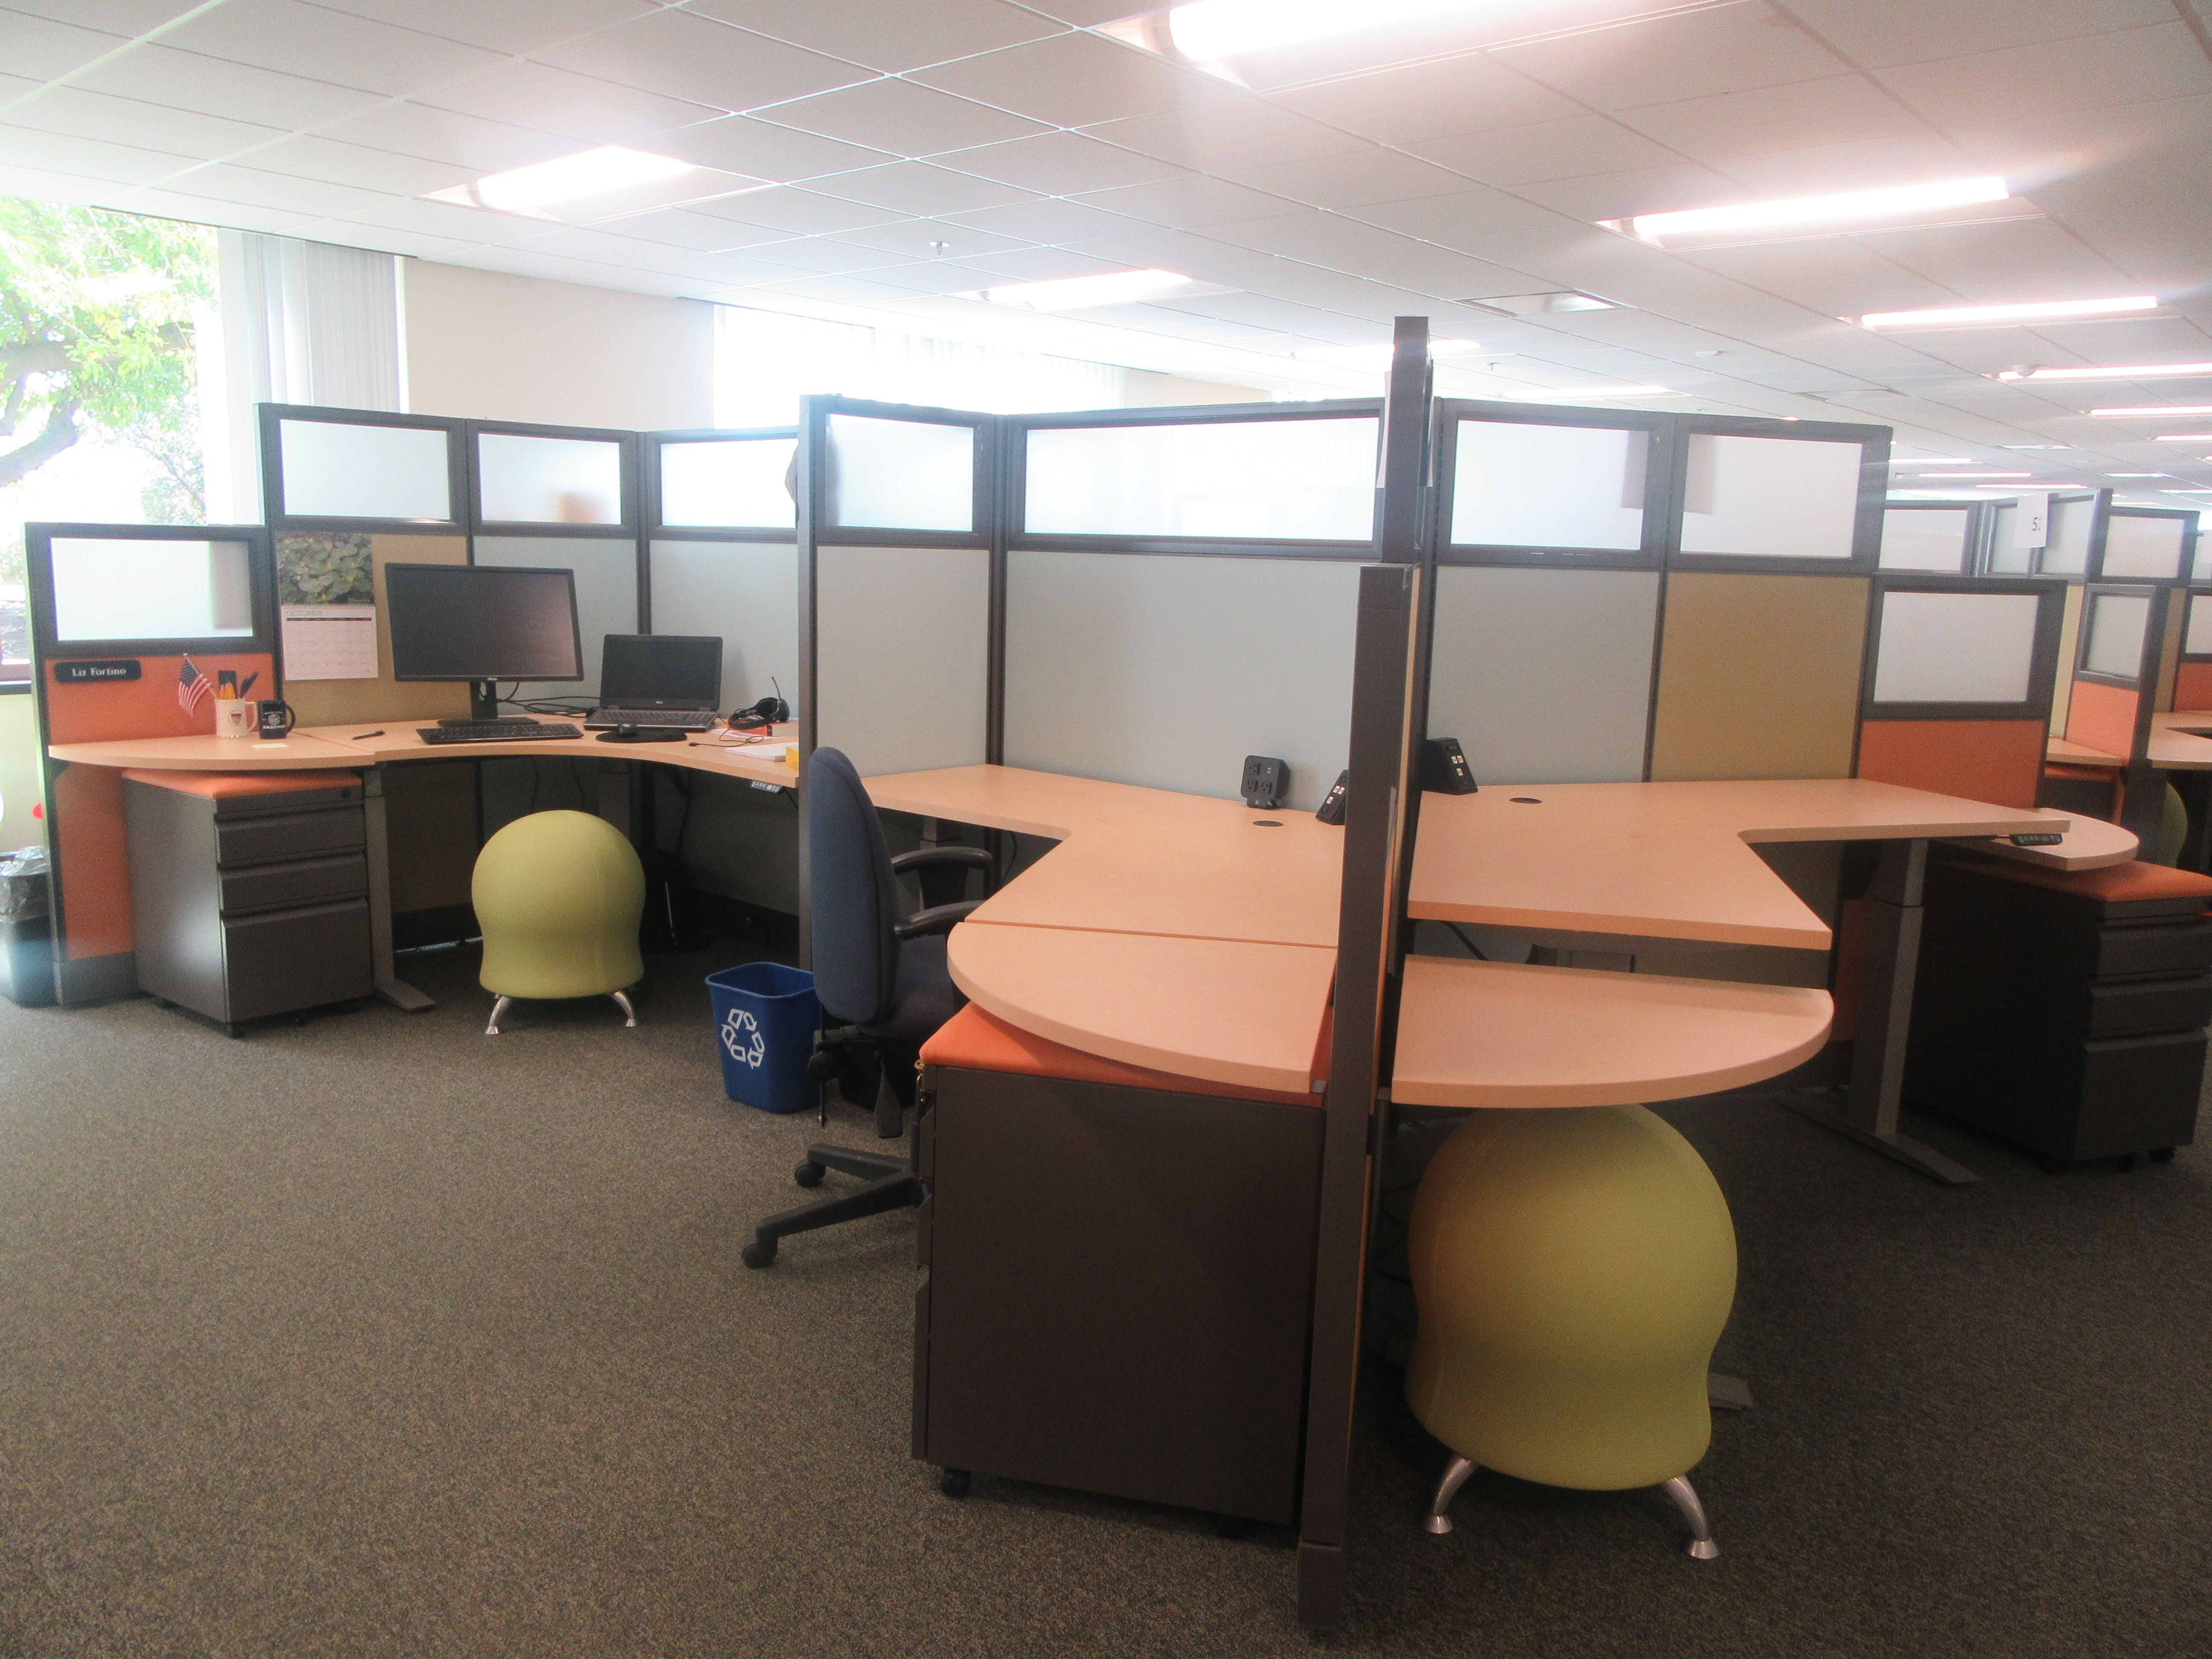 Table dining set moreover galant stand up desk and rationell variera - High Low Cubicles With Ergonomic Height Adjustable Desks Http Joycecontract